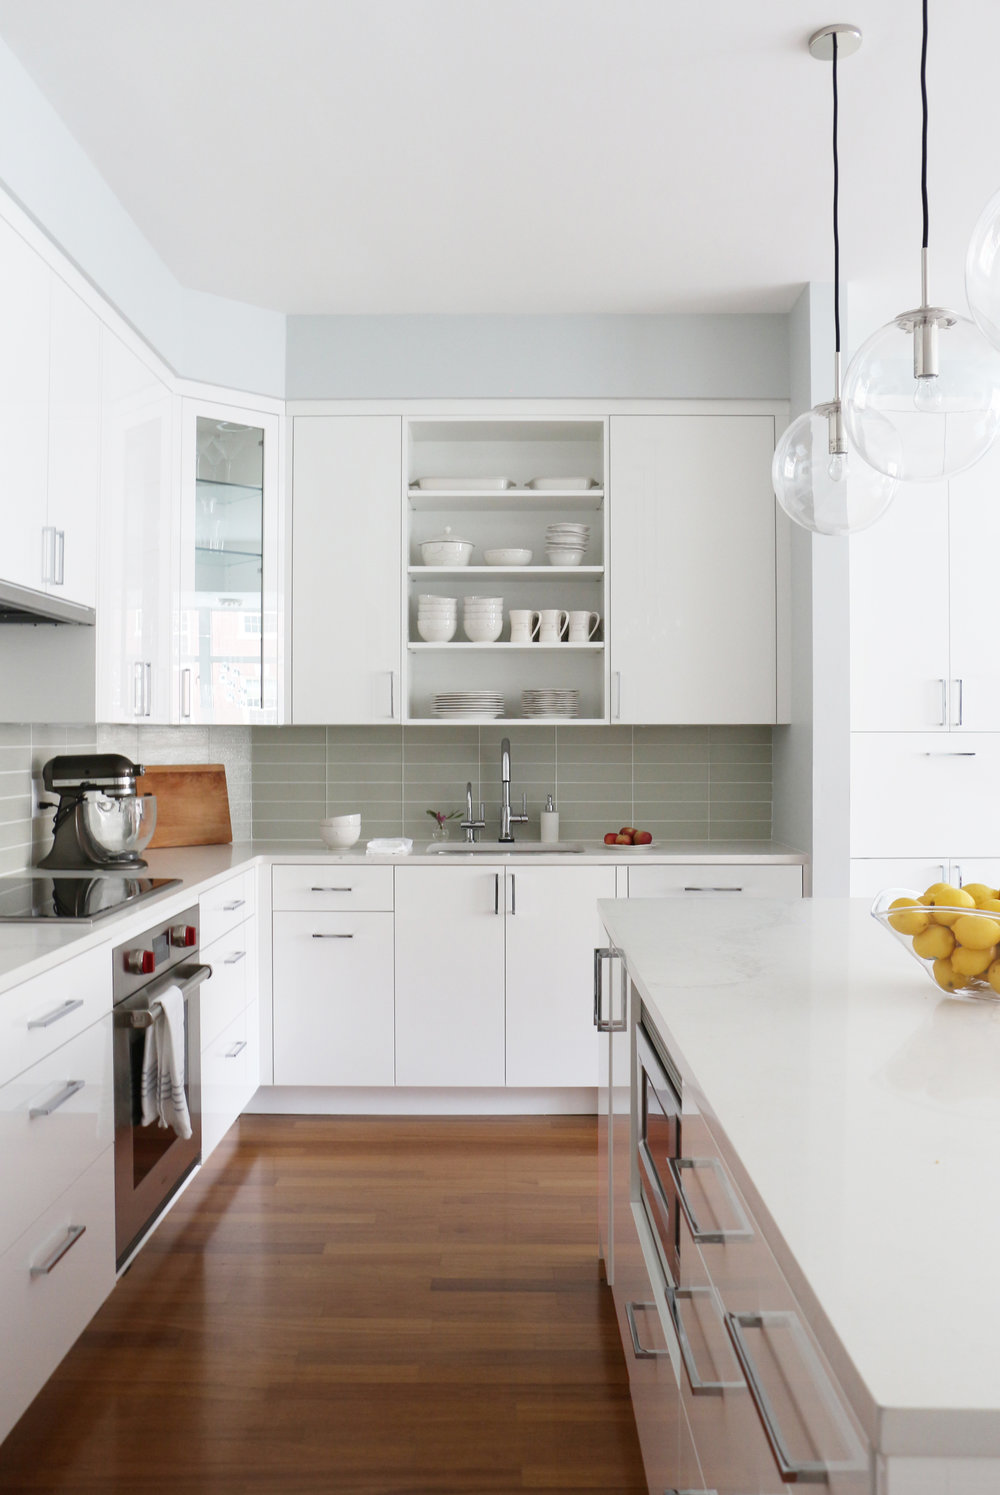 A FRESH TAKE ON AN OUTDATED KITCHEN  - Trisha and Adam were over their all-wood and granite kitchen and wanted something light, bright and modern.